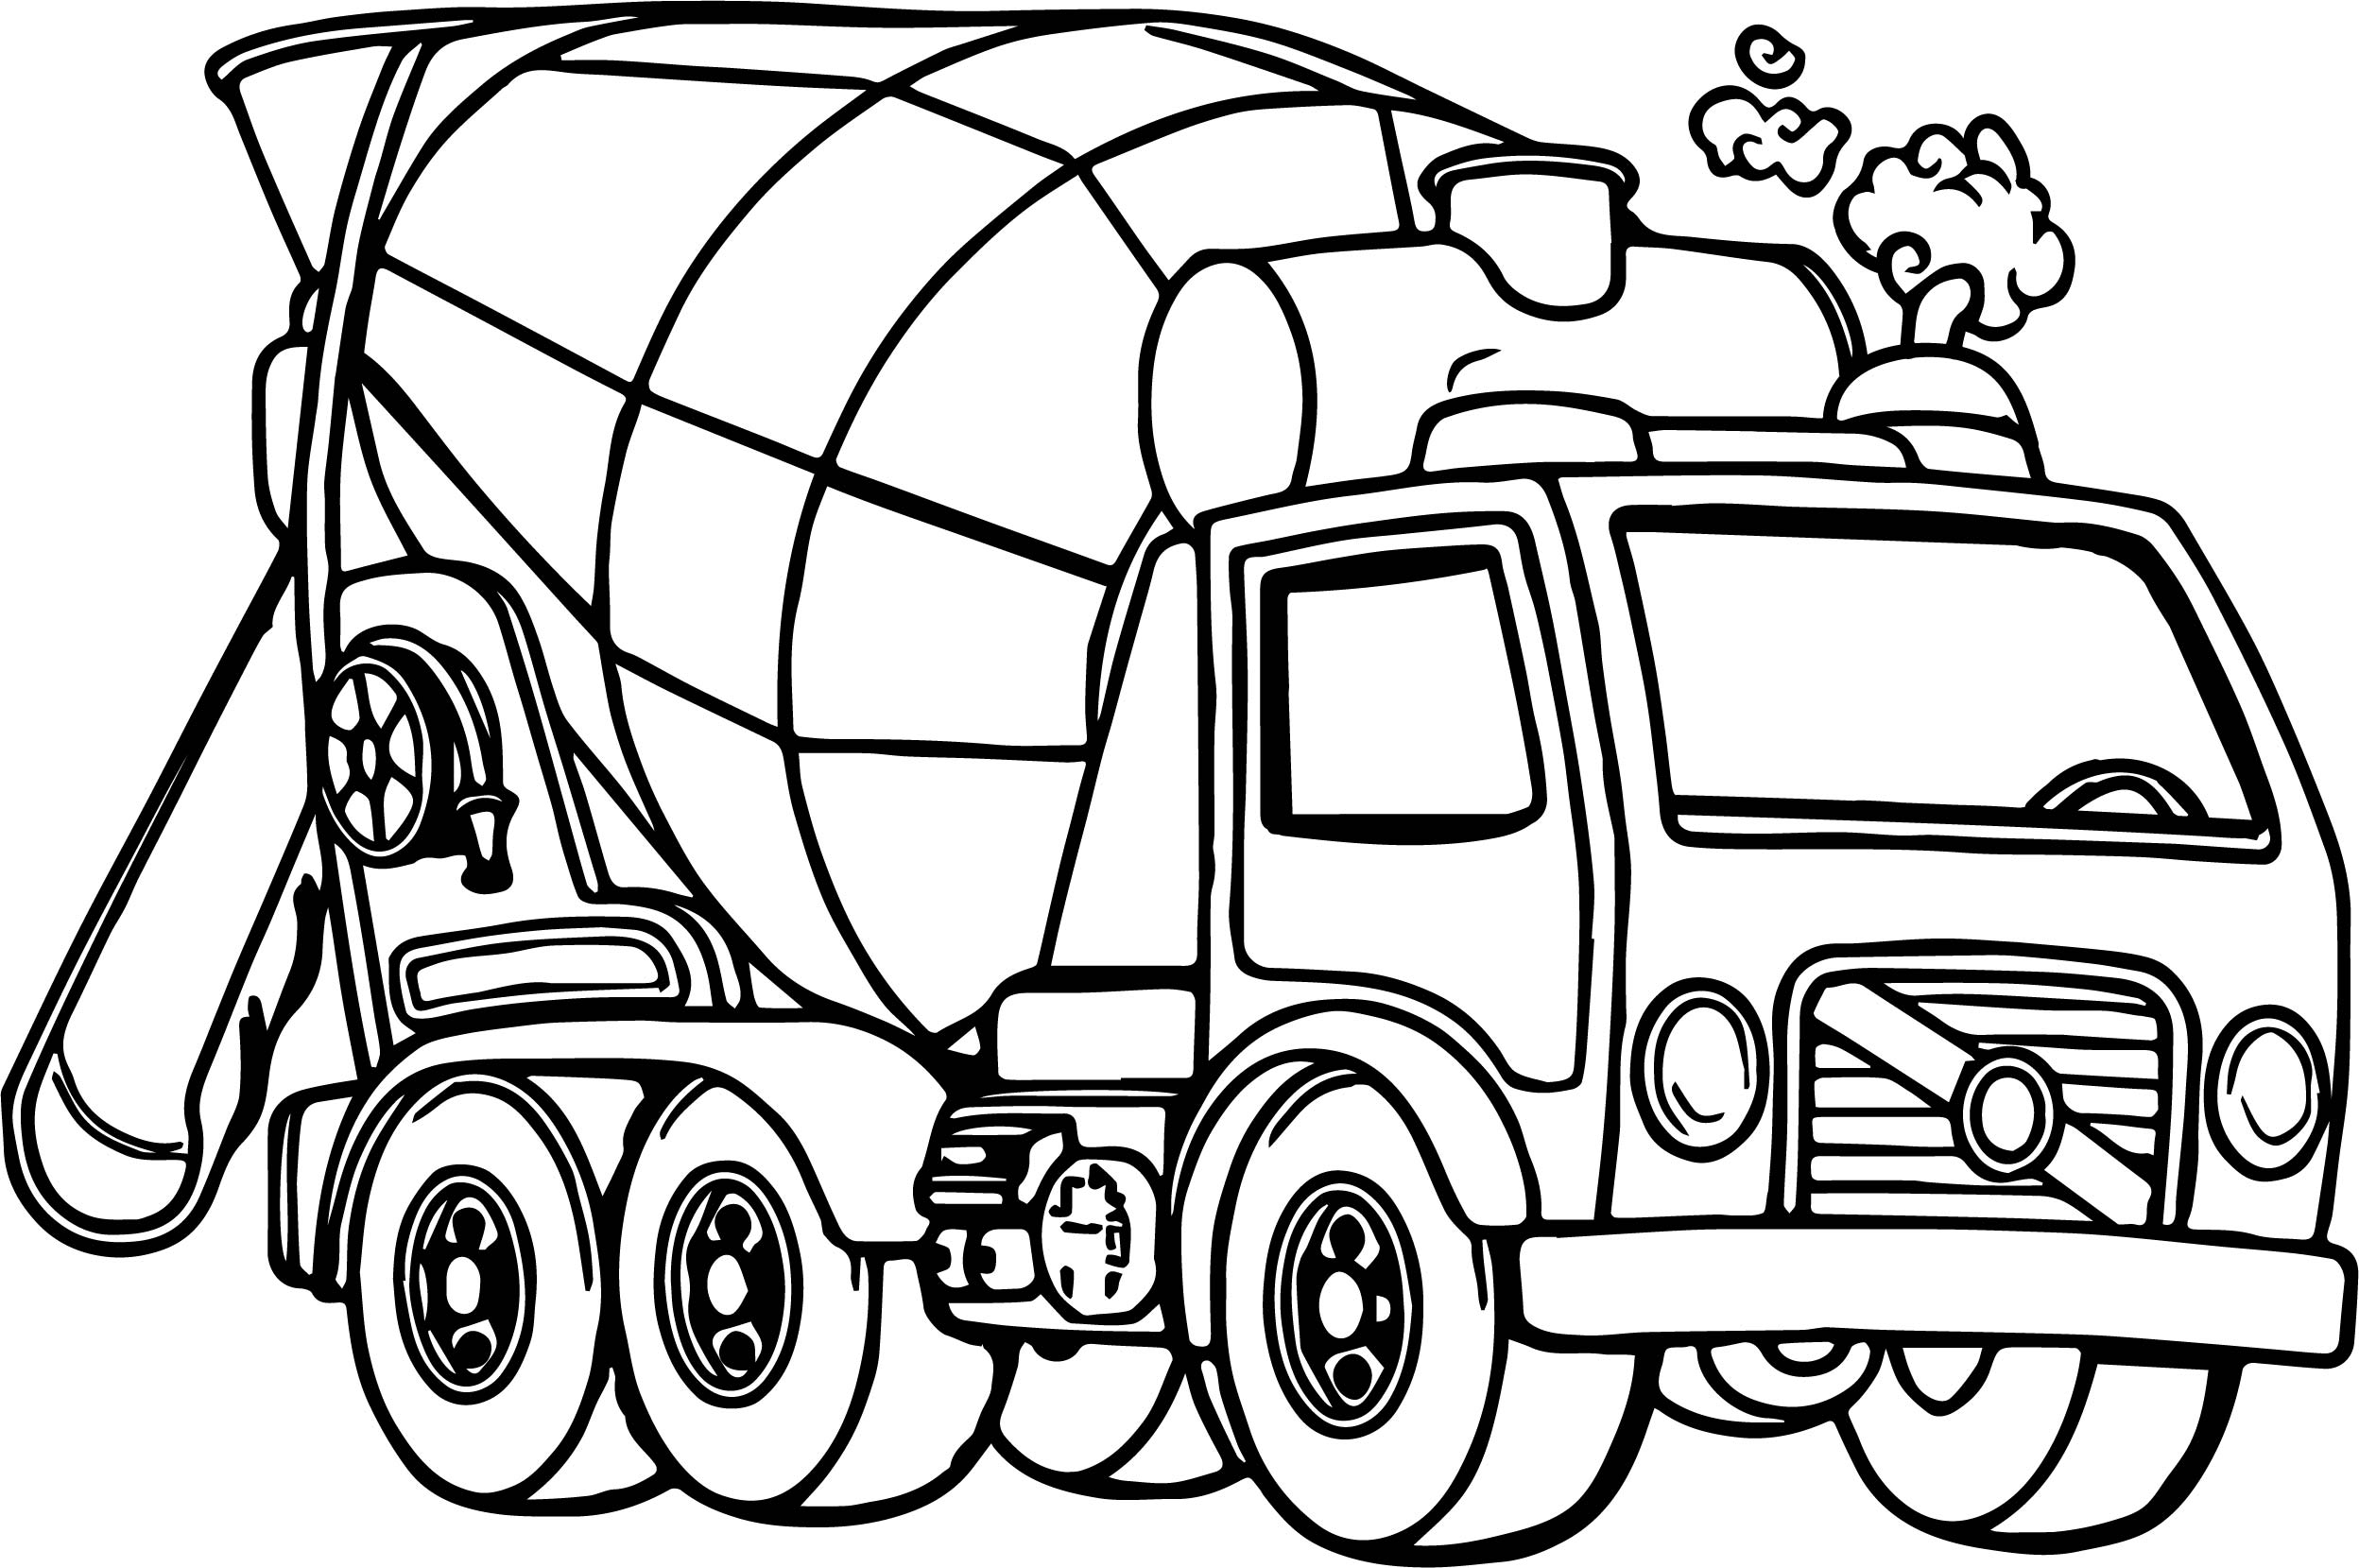 cc5500 coloring pages - photo#8